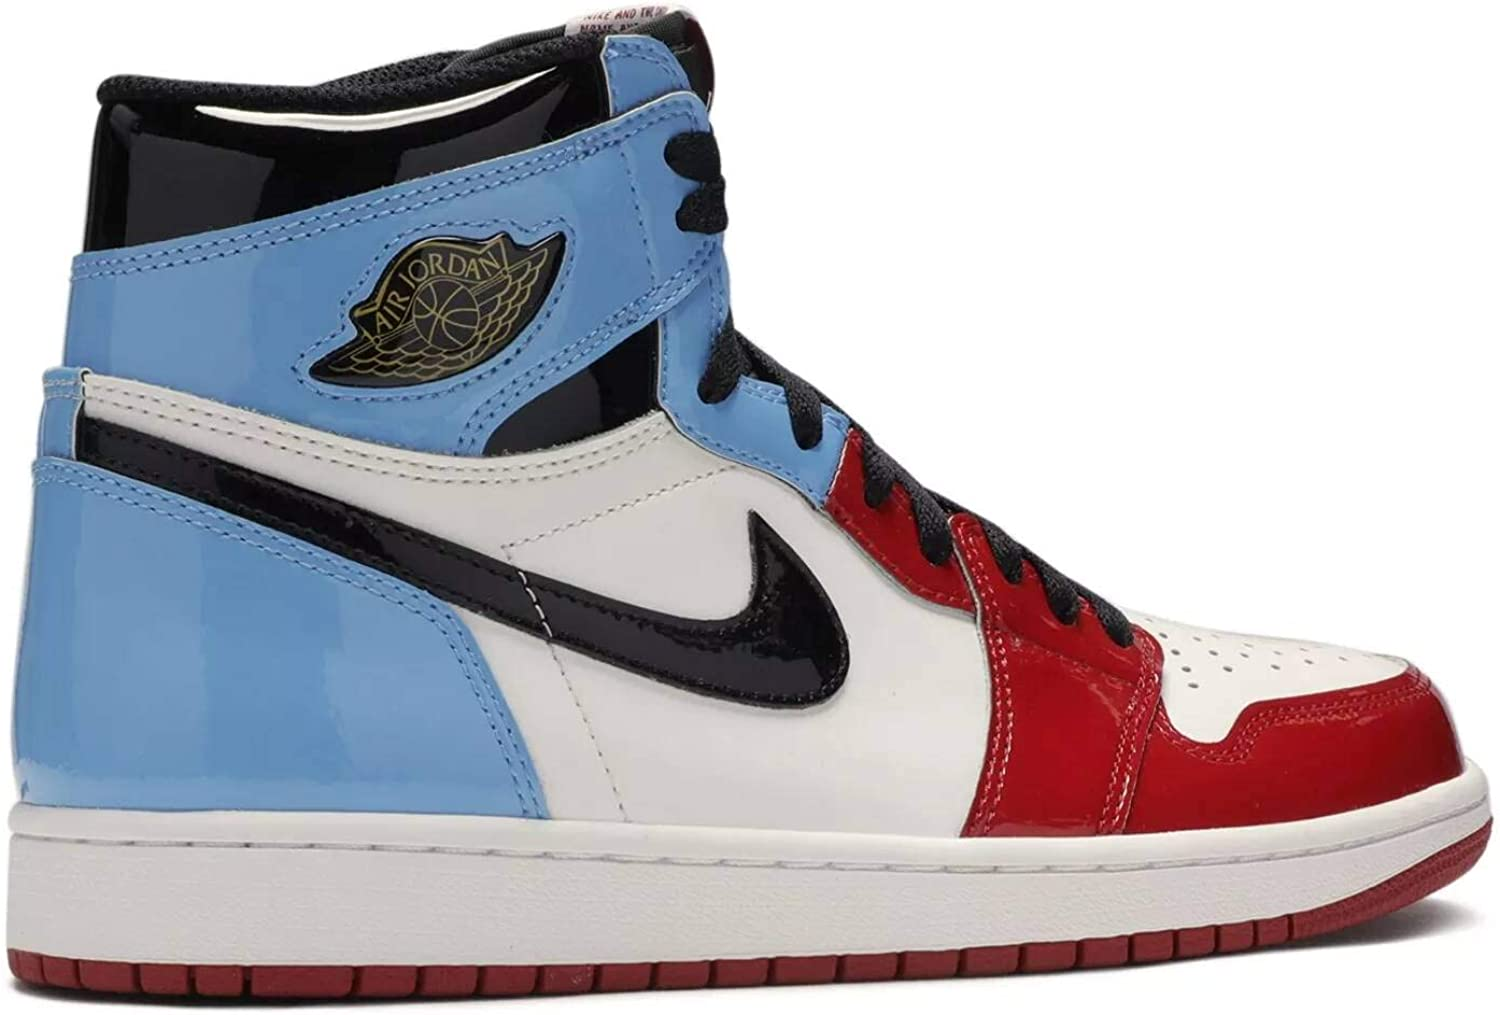 AIR JORDAN 1 Baskets rétro High OG Fearless Vernis Hite